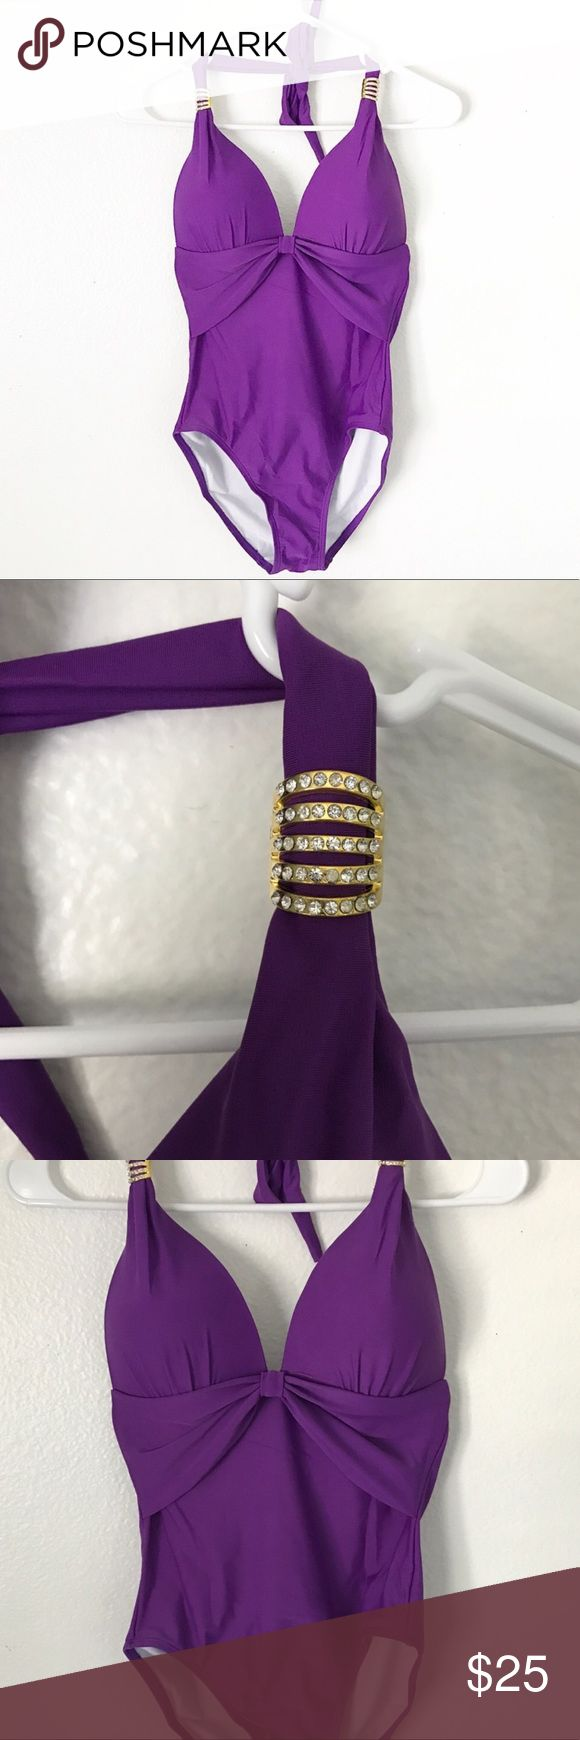 Purple one piece bathing suit Brand new beautiful purple one piece bathing suit. Low-v neck style. And lower back. Adjustable neck tie. Gold rhinestone hardware design that are removable. Swim One Pieces